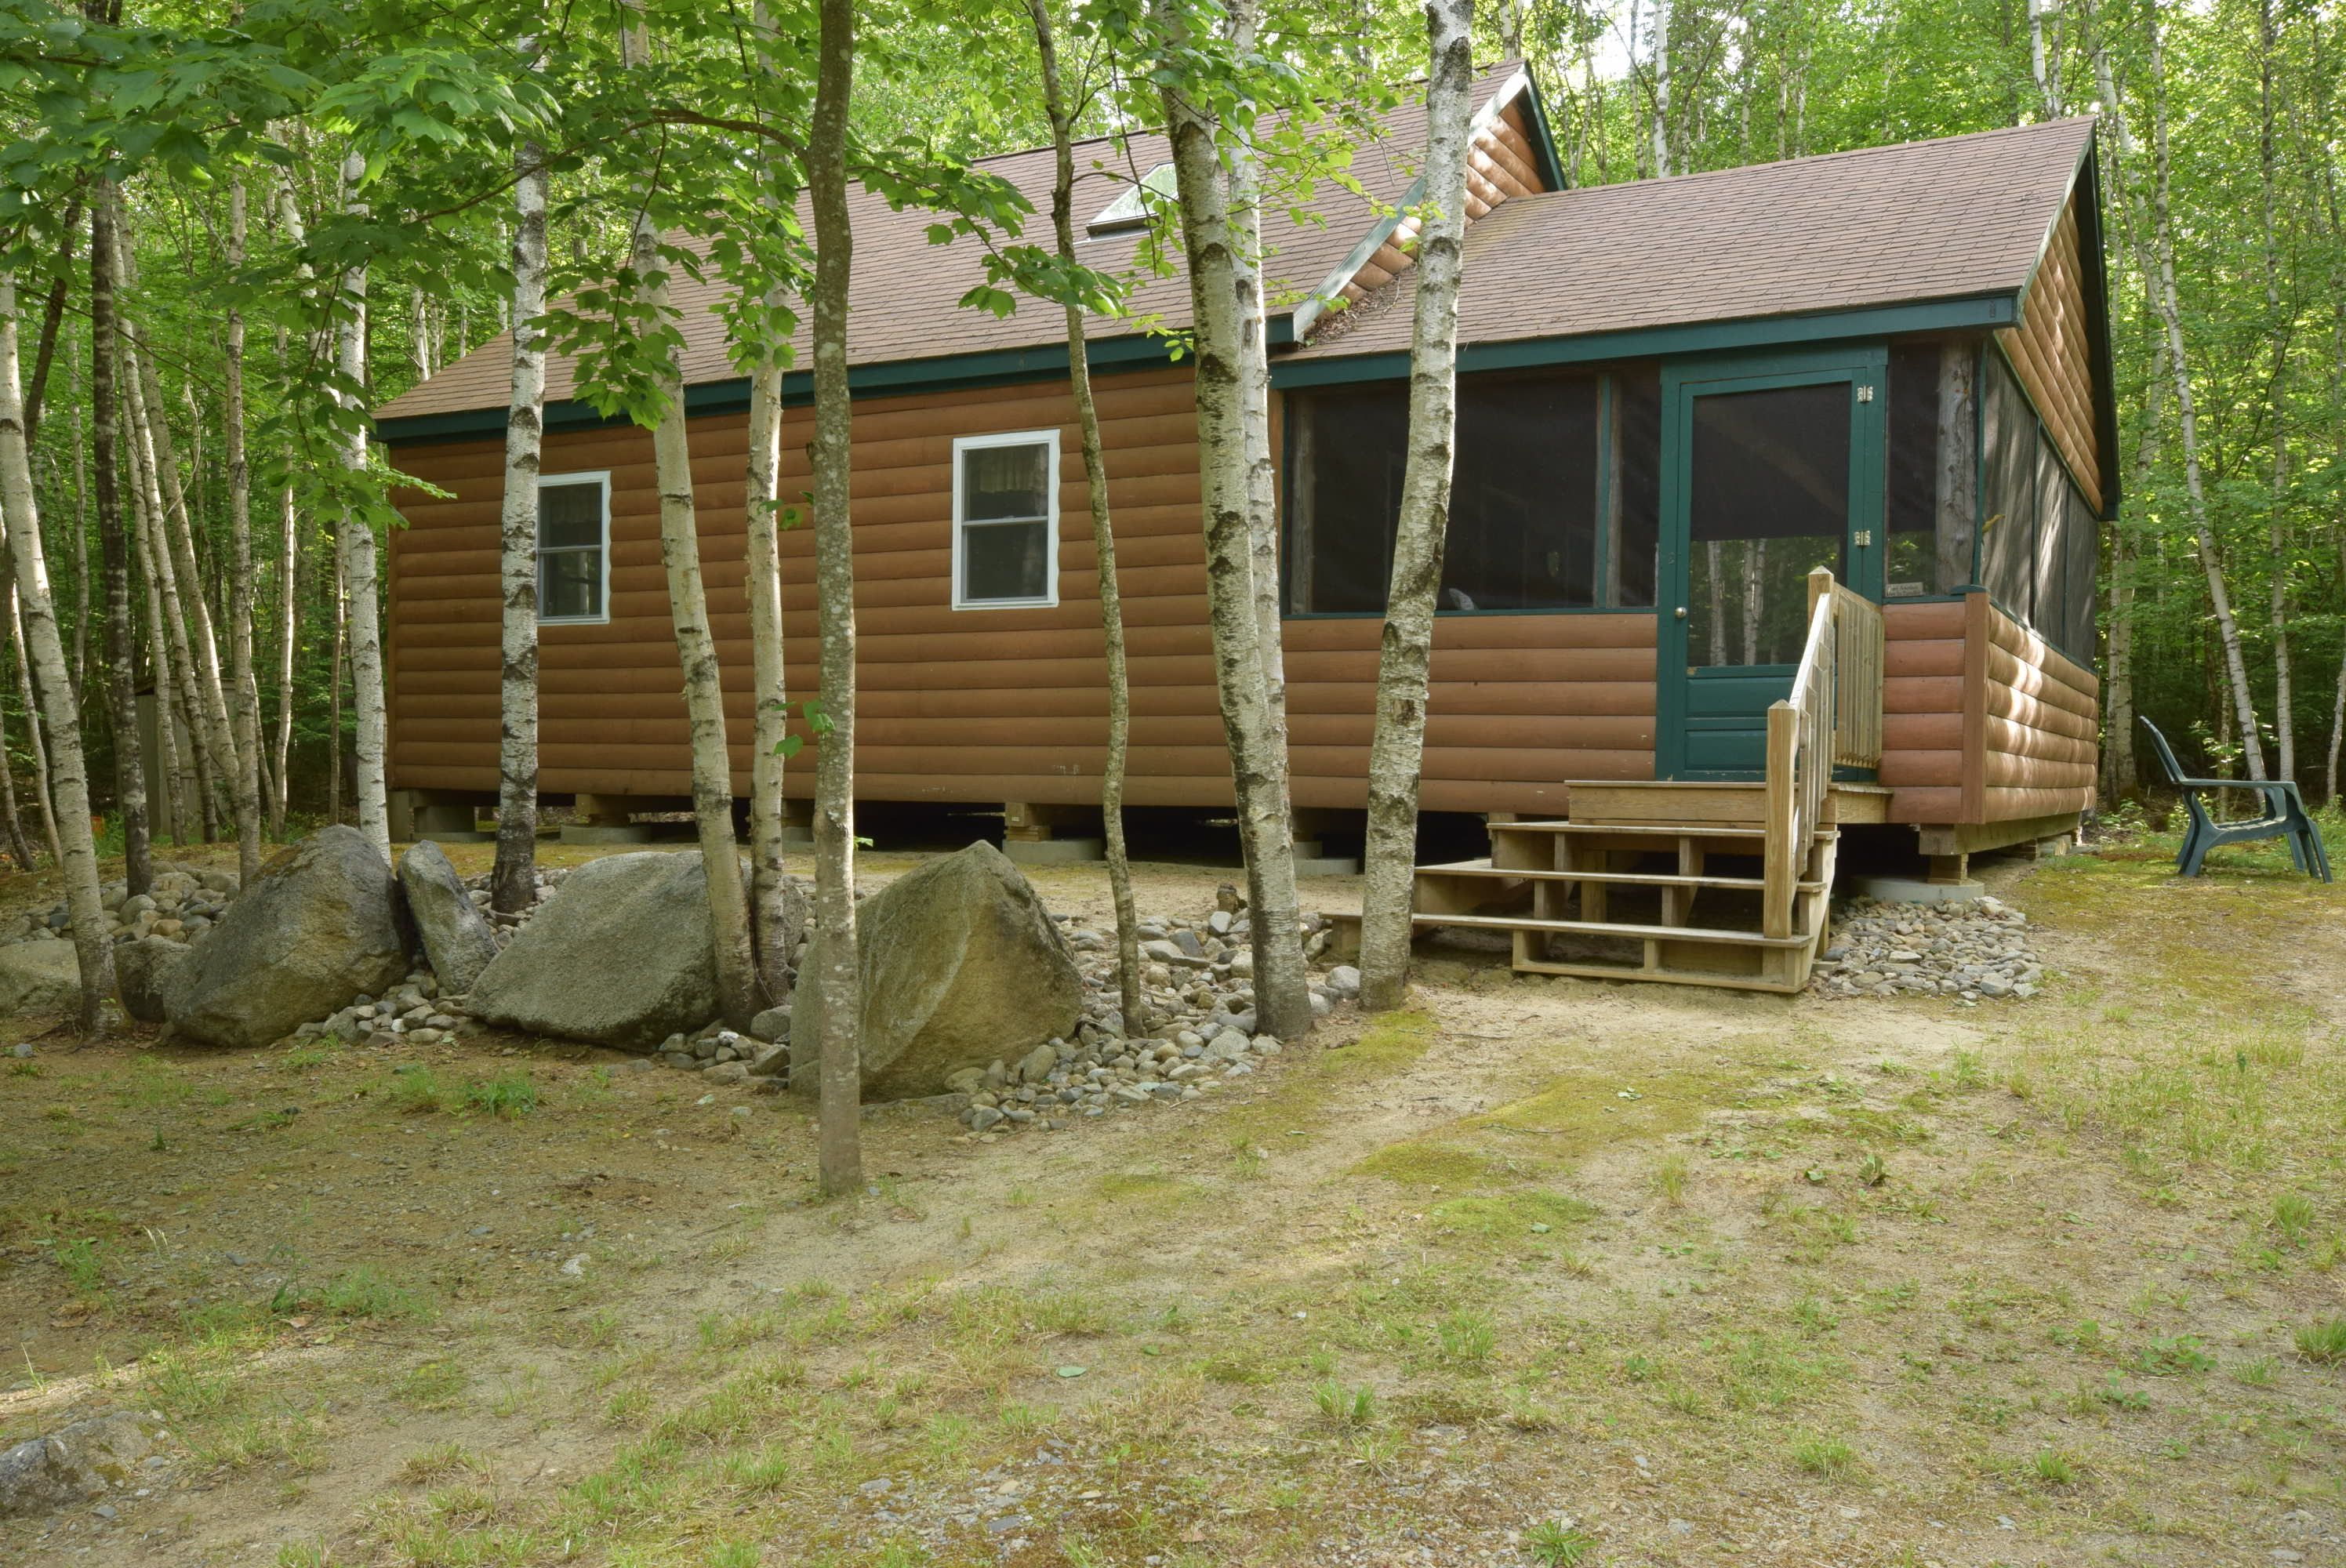 lodging sale all the rustic lodge front nicatous and season maine view cabins lakefront of vacation